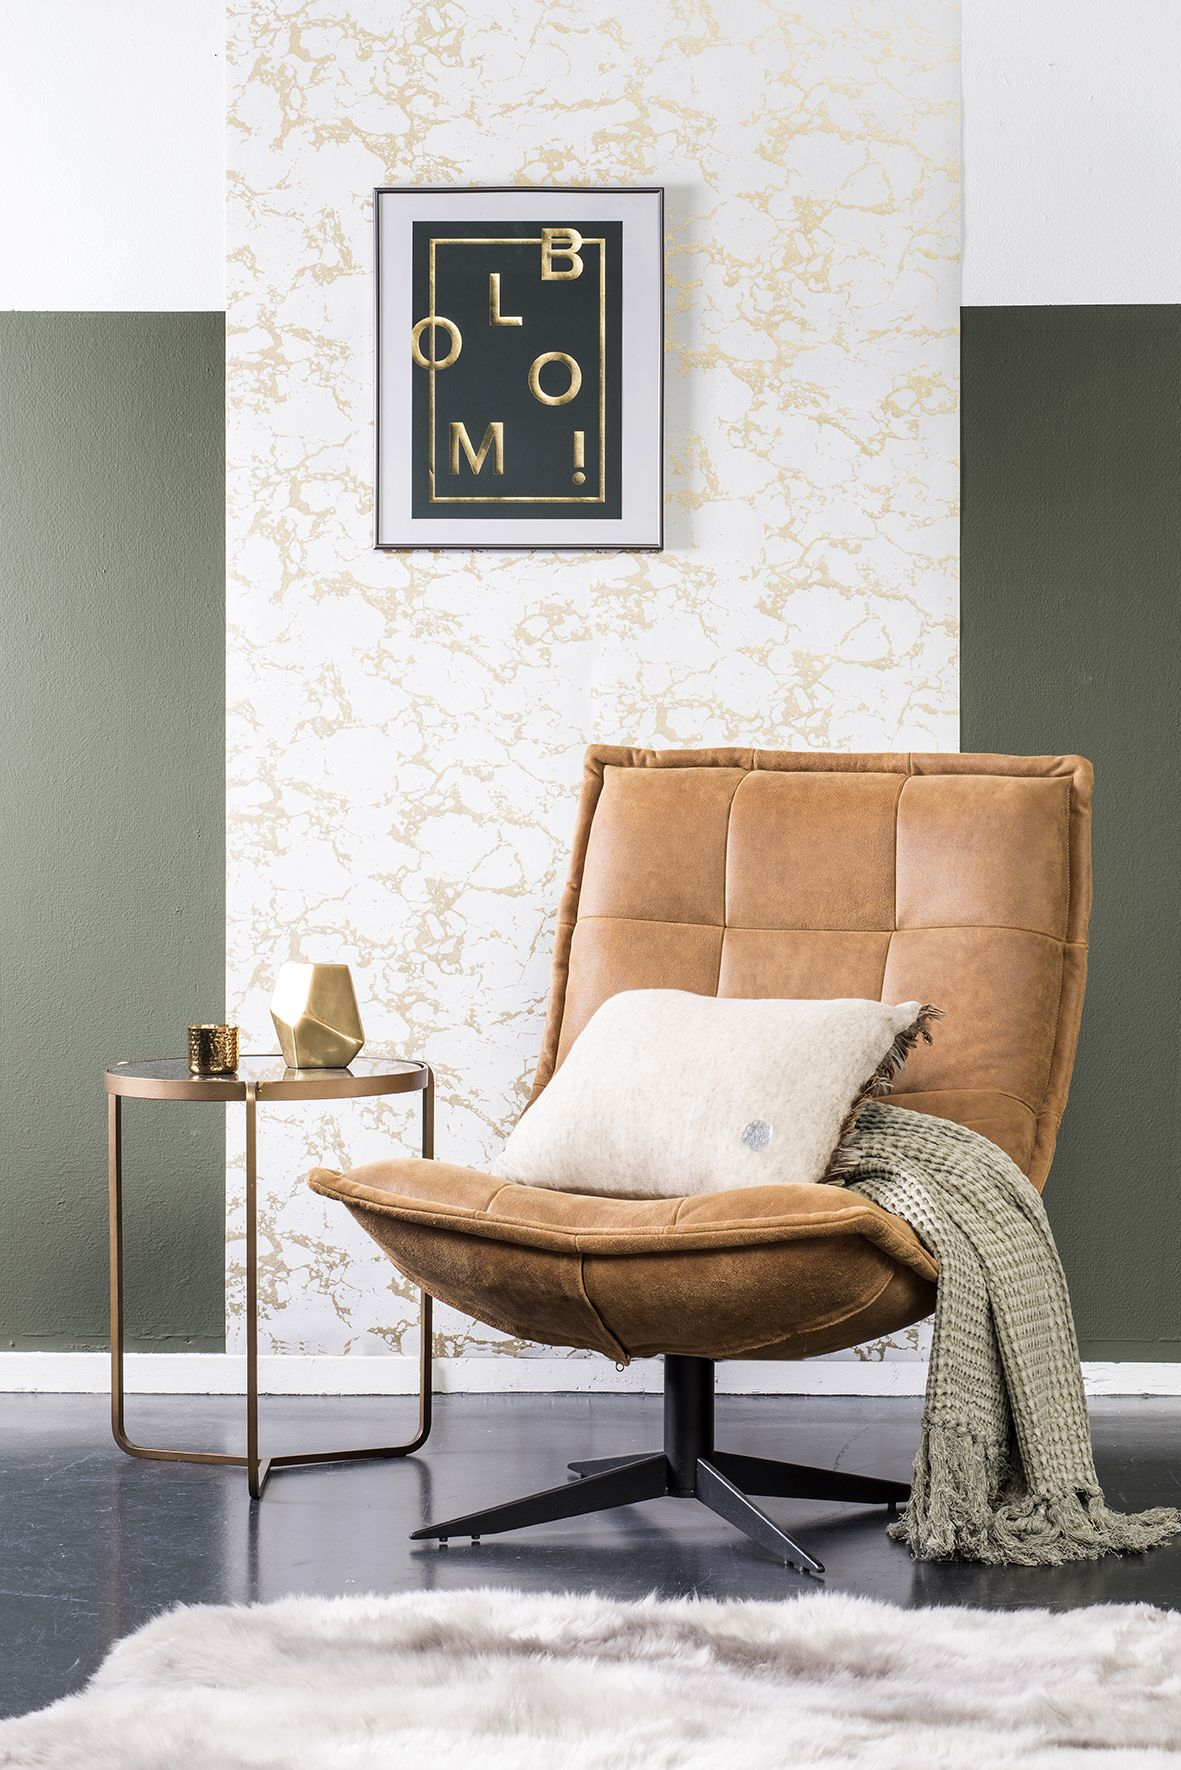 living room chair, brown leather lounge chair, black seamless floor, green wall, marble accent wall, glass golden side table